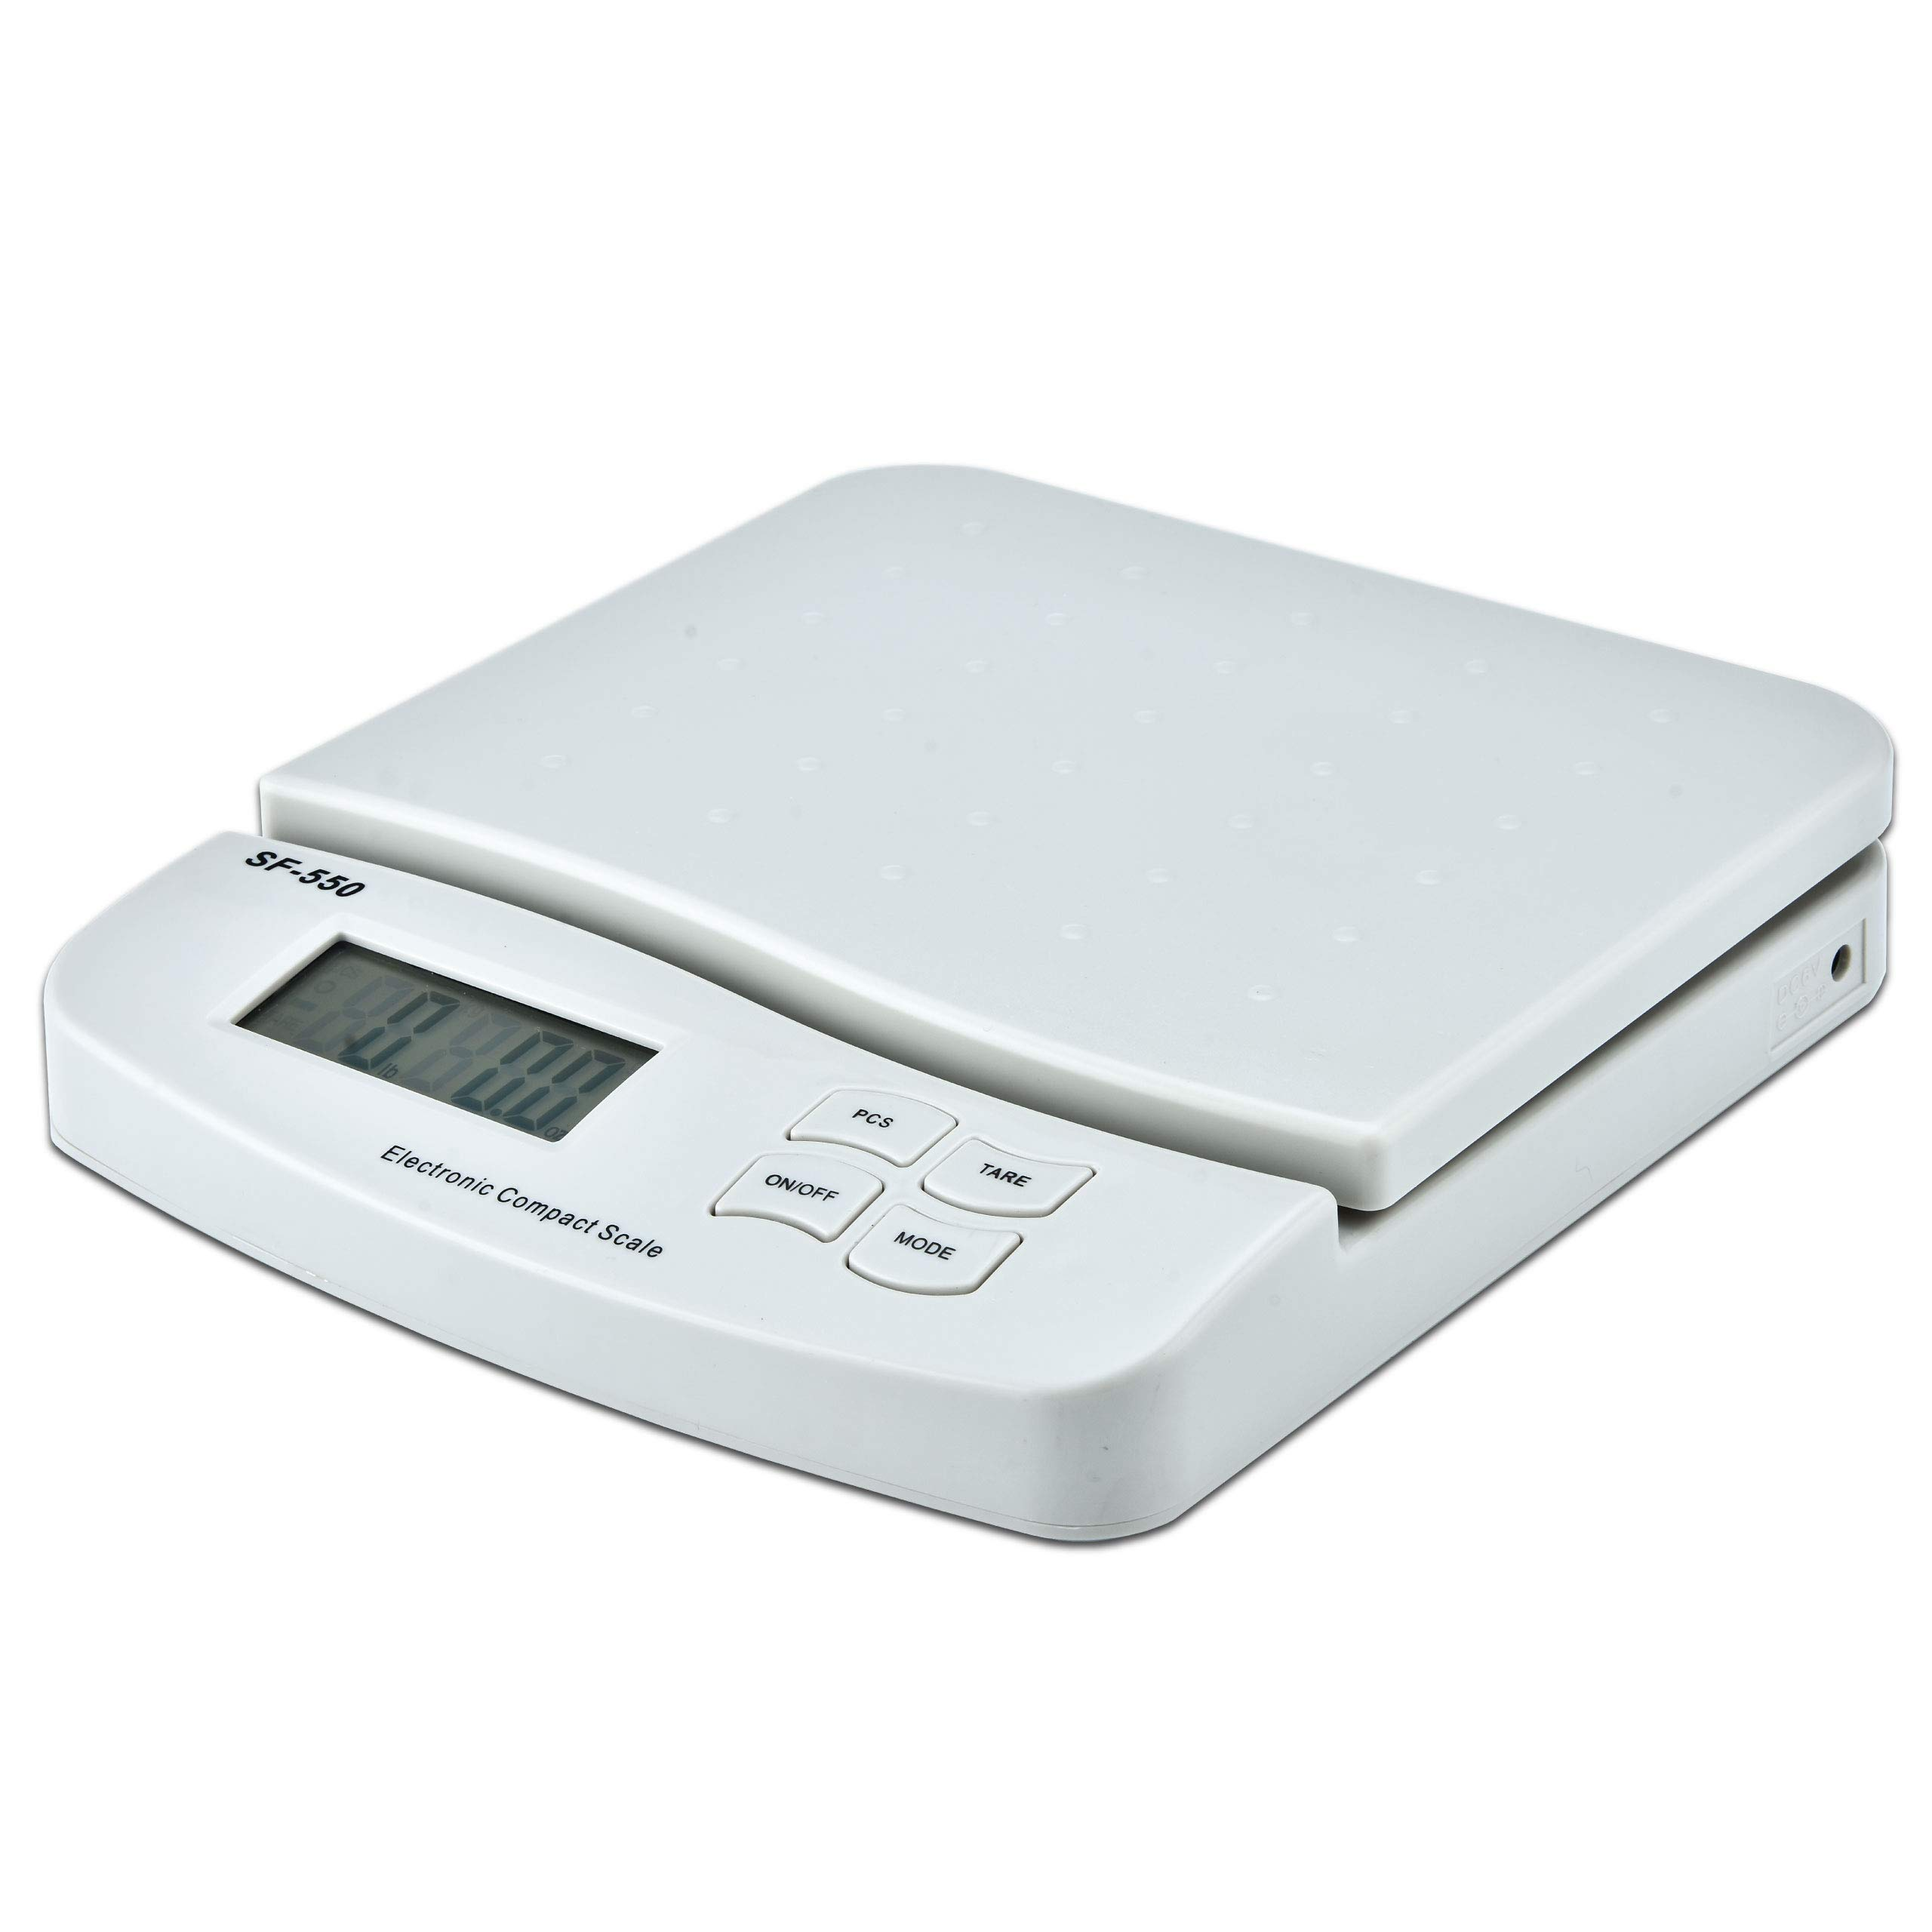 Horizon SF-550 V2 55 LB x 0.1 OZ Digital Postal Shipping Scale with Counting Function